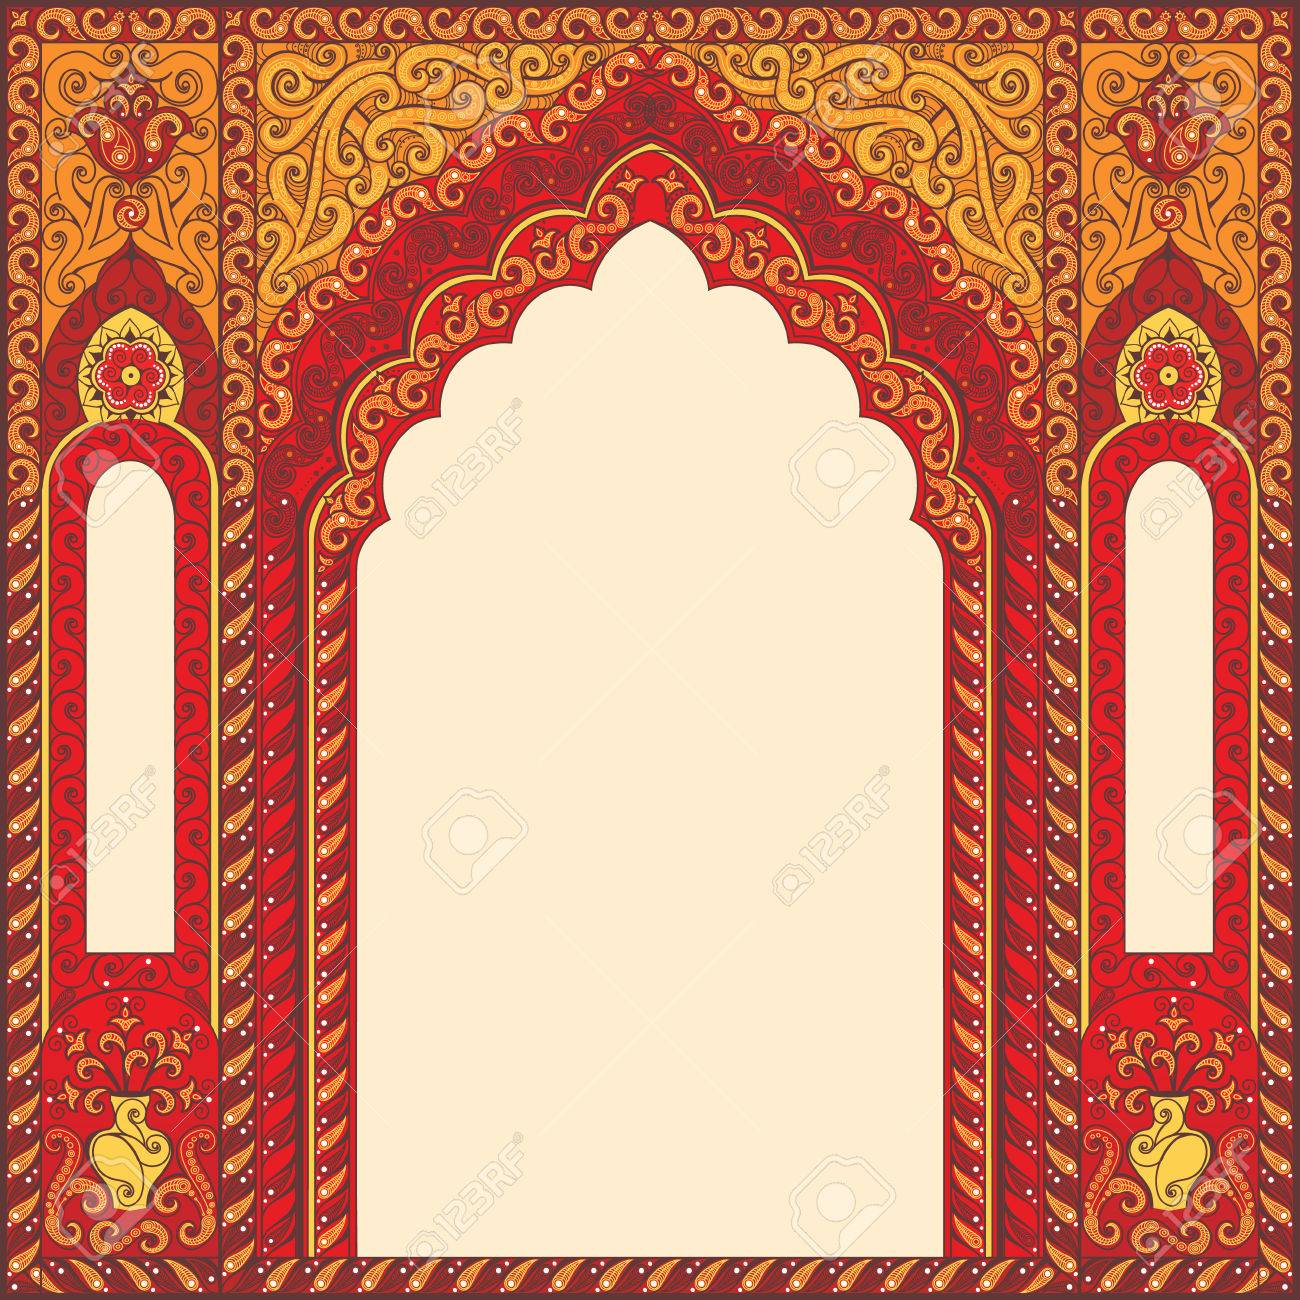 Eastern Red Frames, Arch. Template Design Elements In Oriental ...